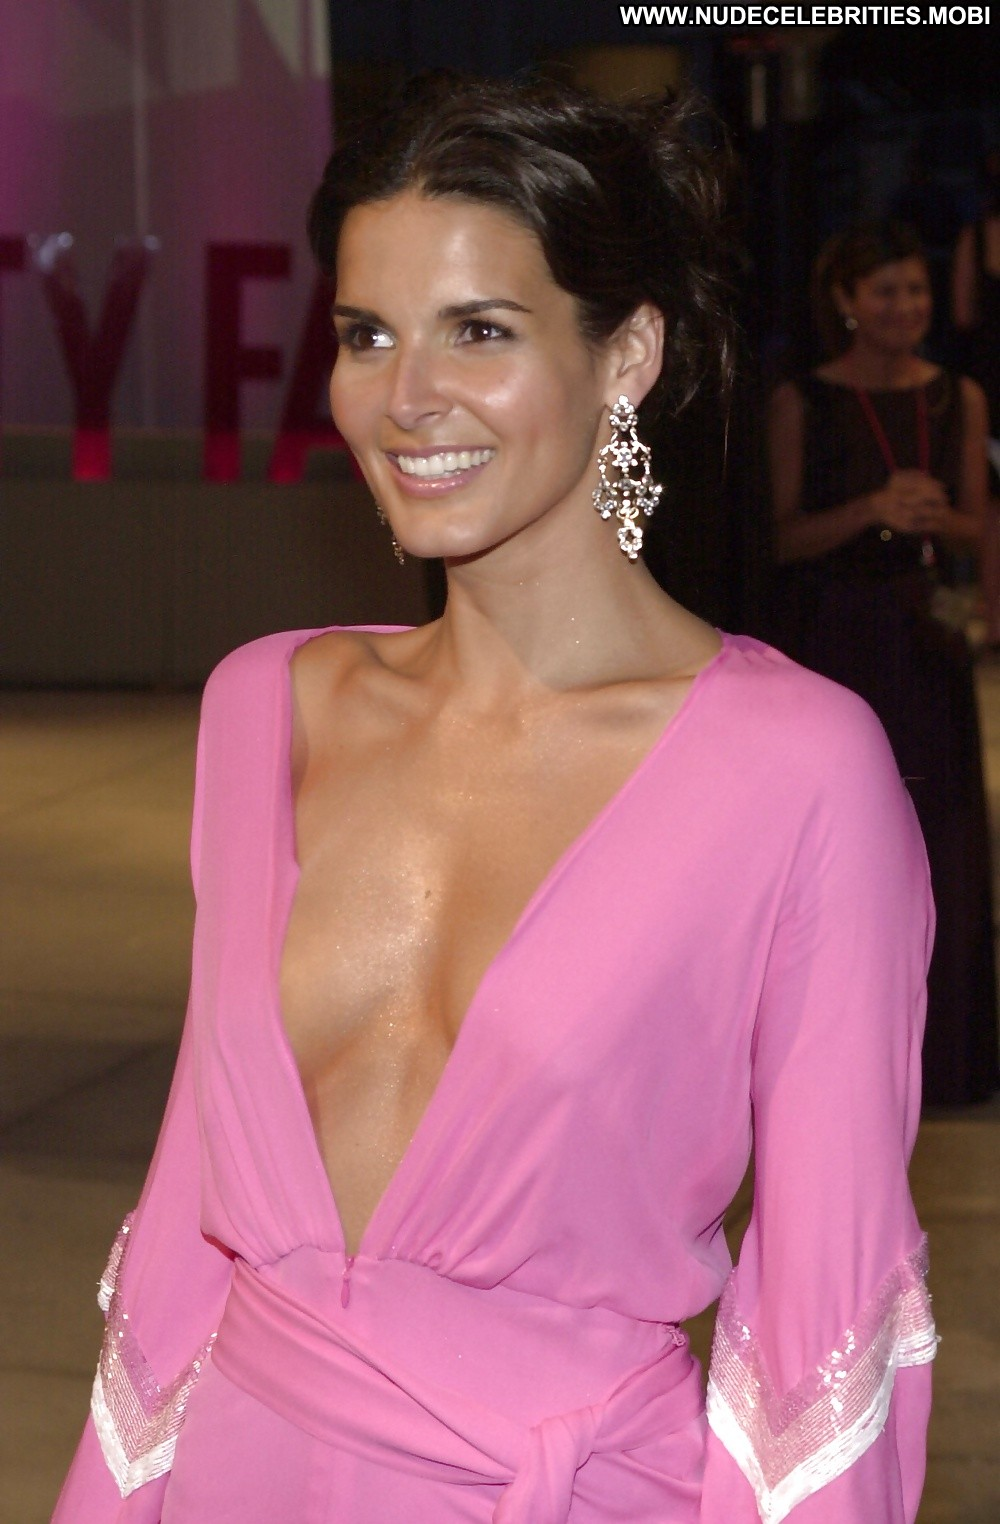 Angie Harmon has wardrobe malfunction on ... 'Live with ...